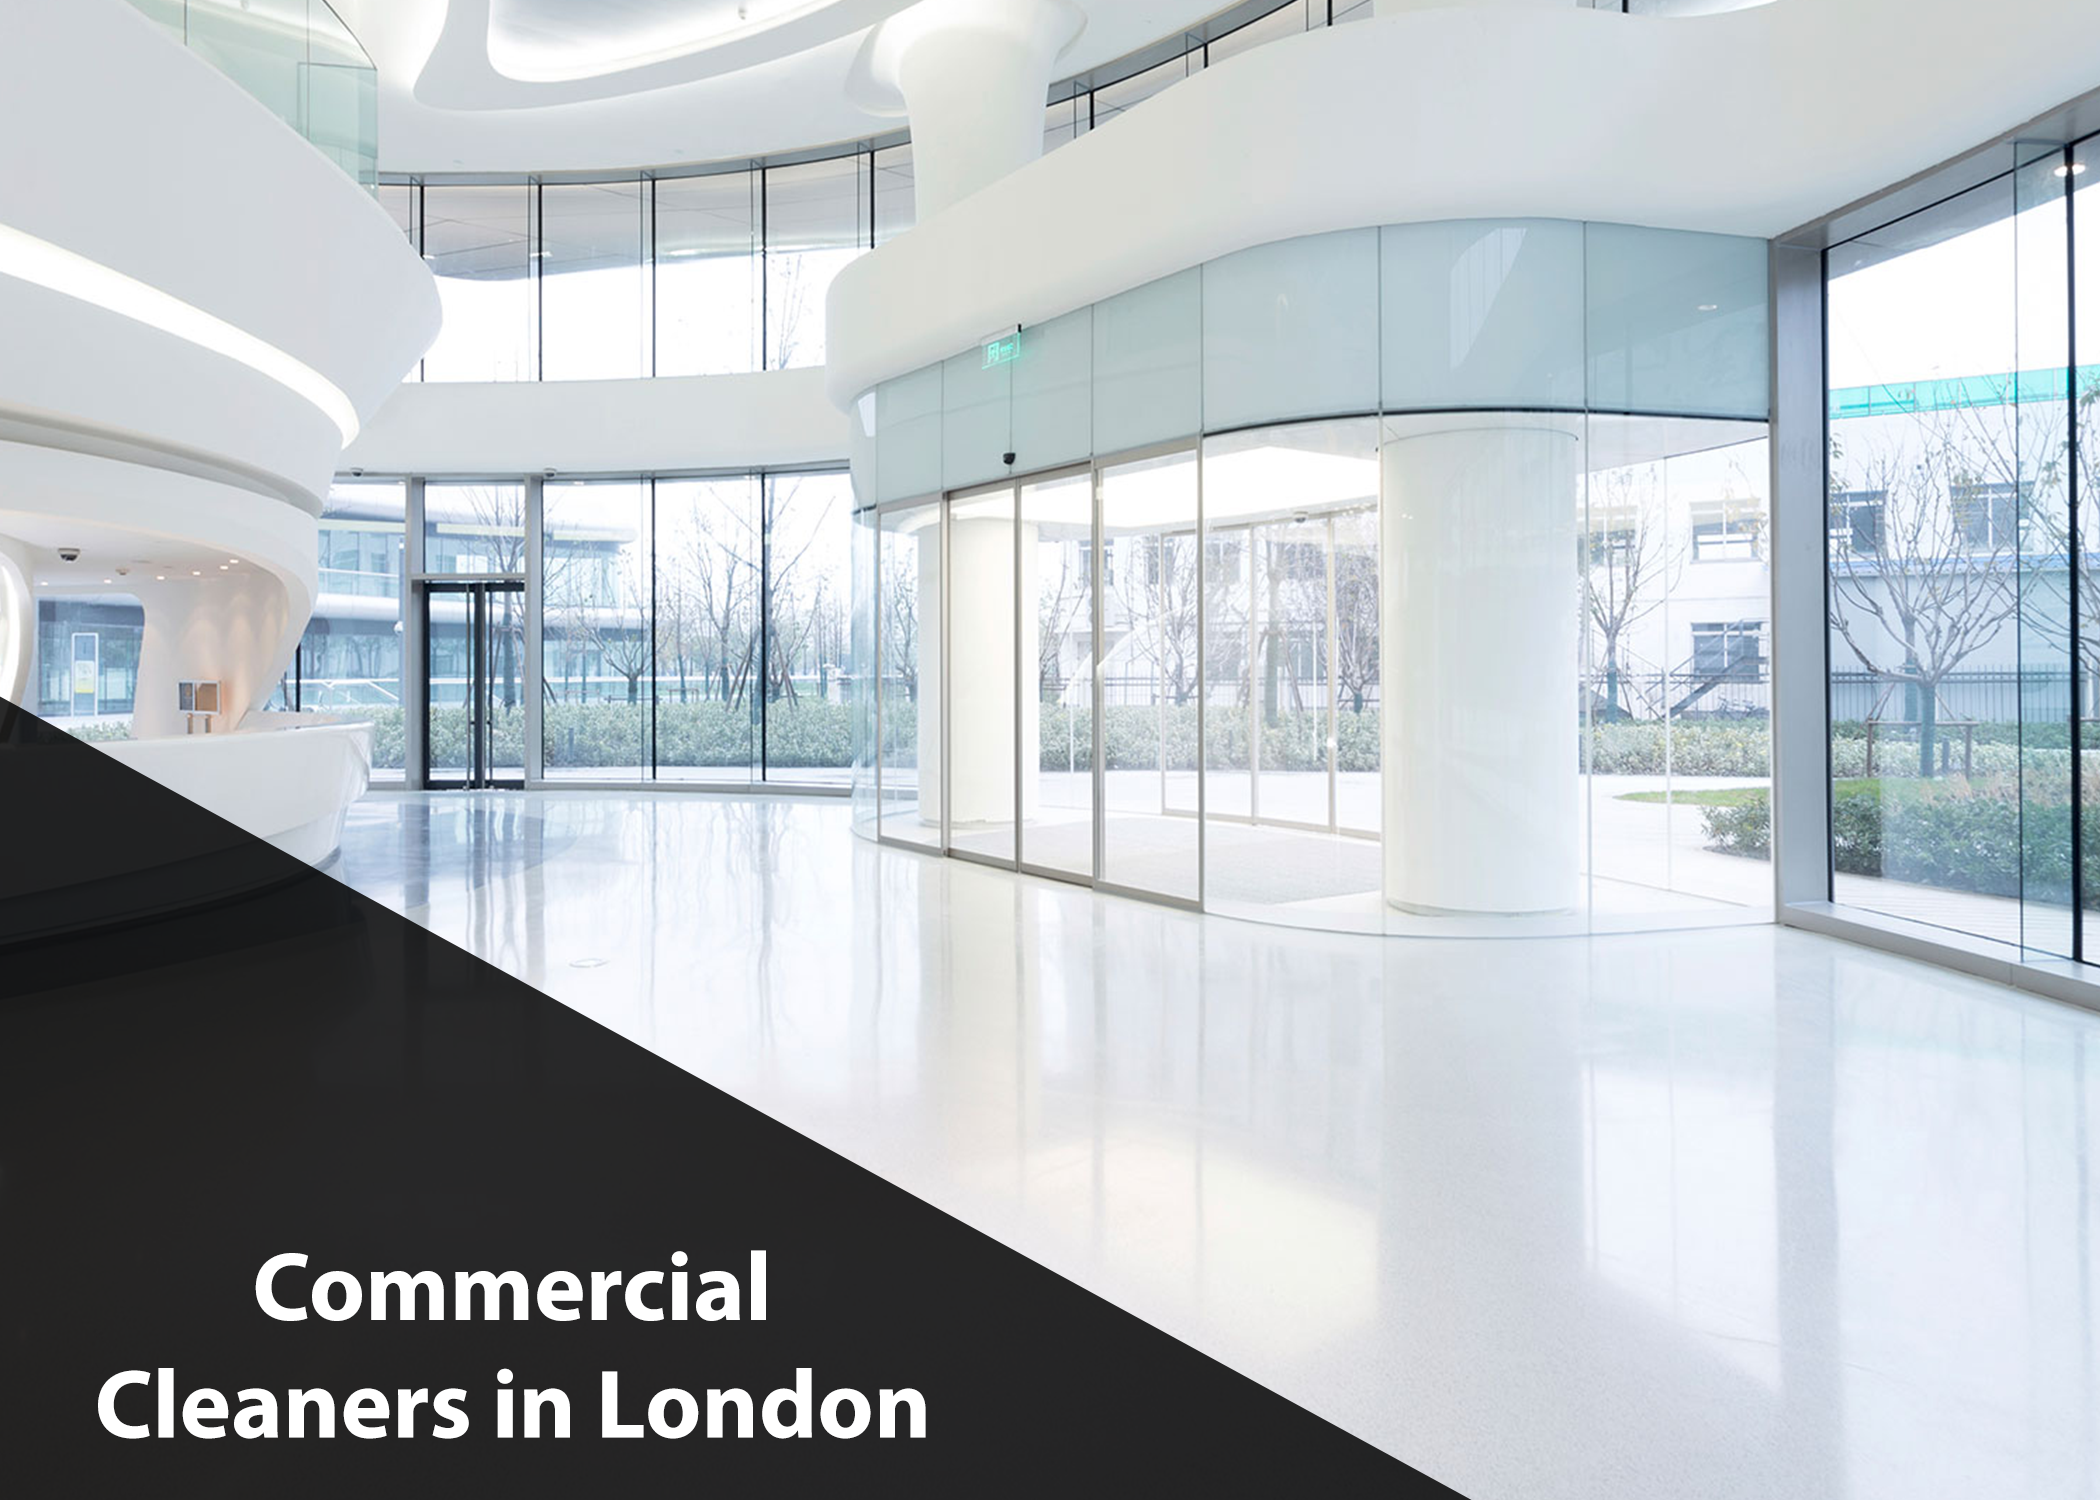 Commercial Cleaners in London